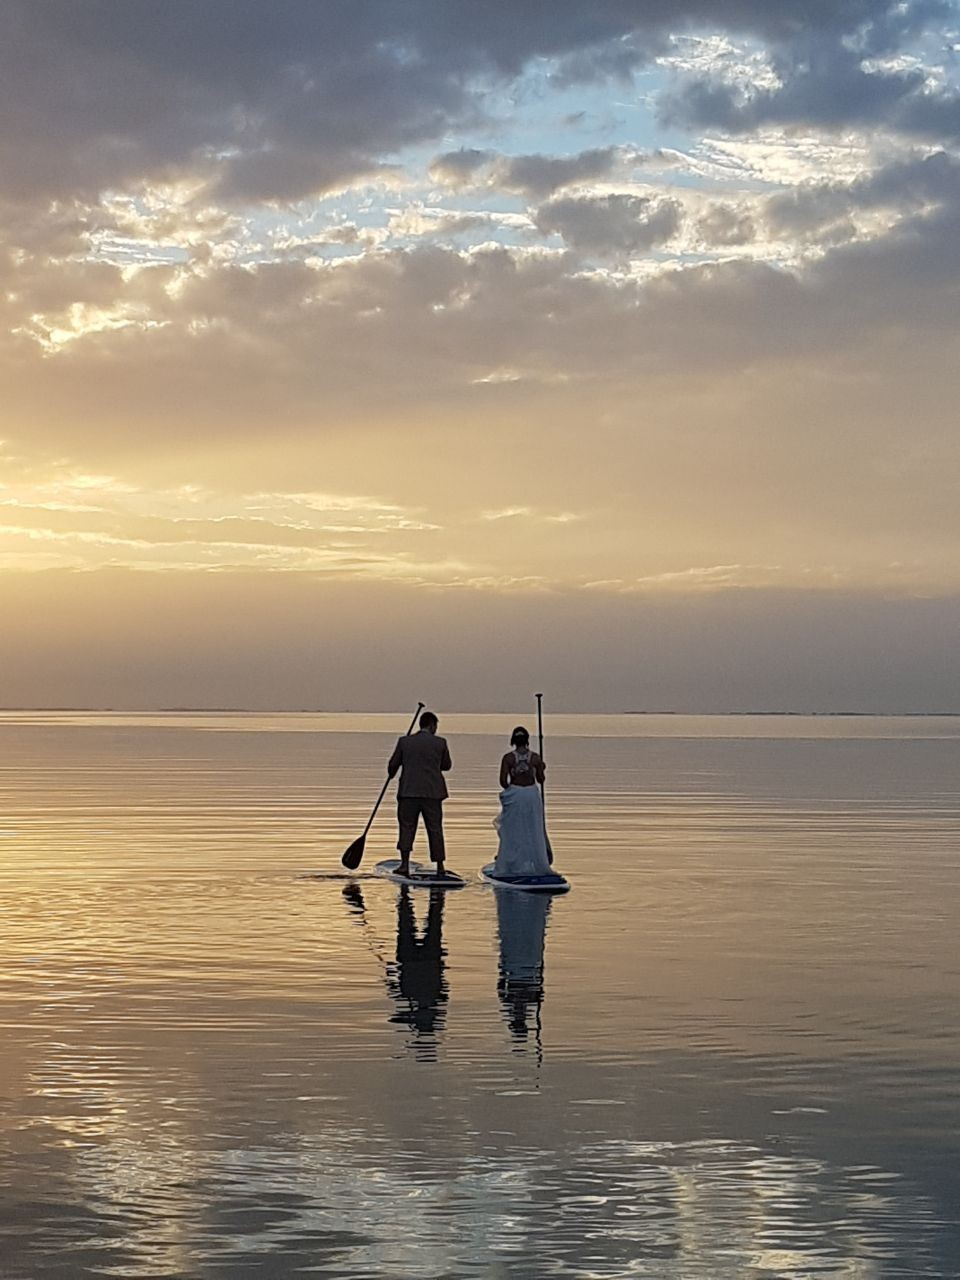 Wedded-Bliss-on-SUPs-at-sunset-St-Georges-Caye-Belize